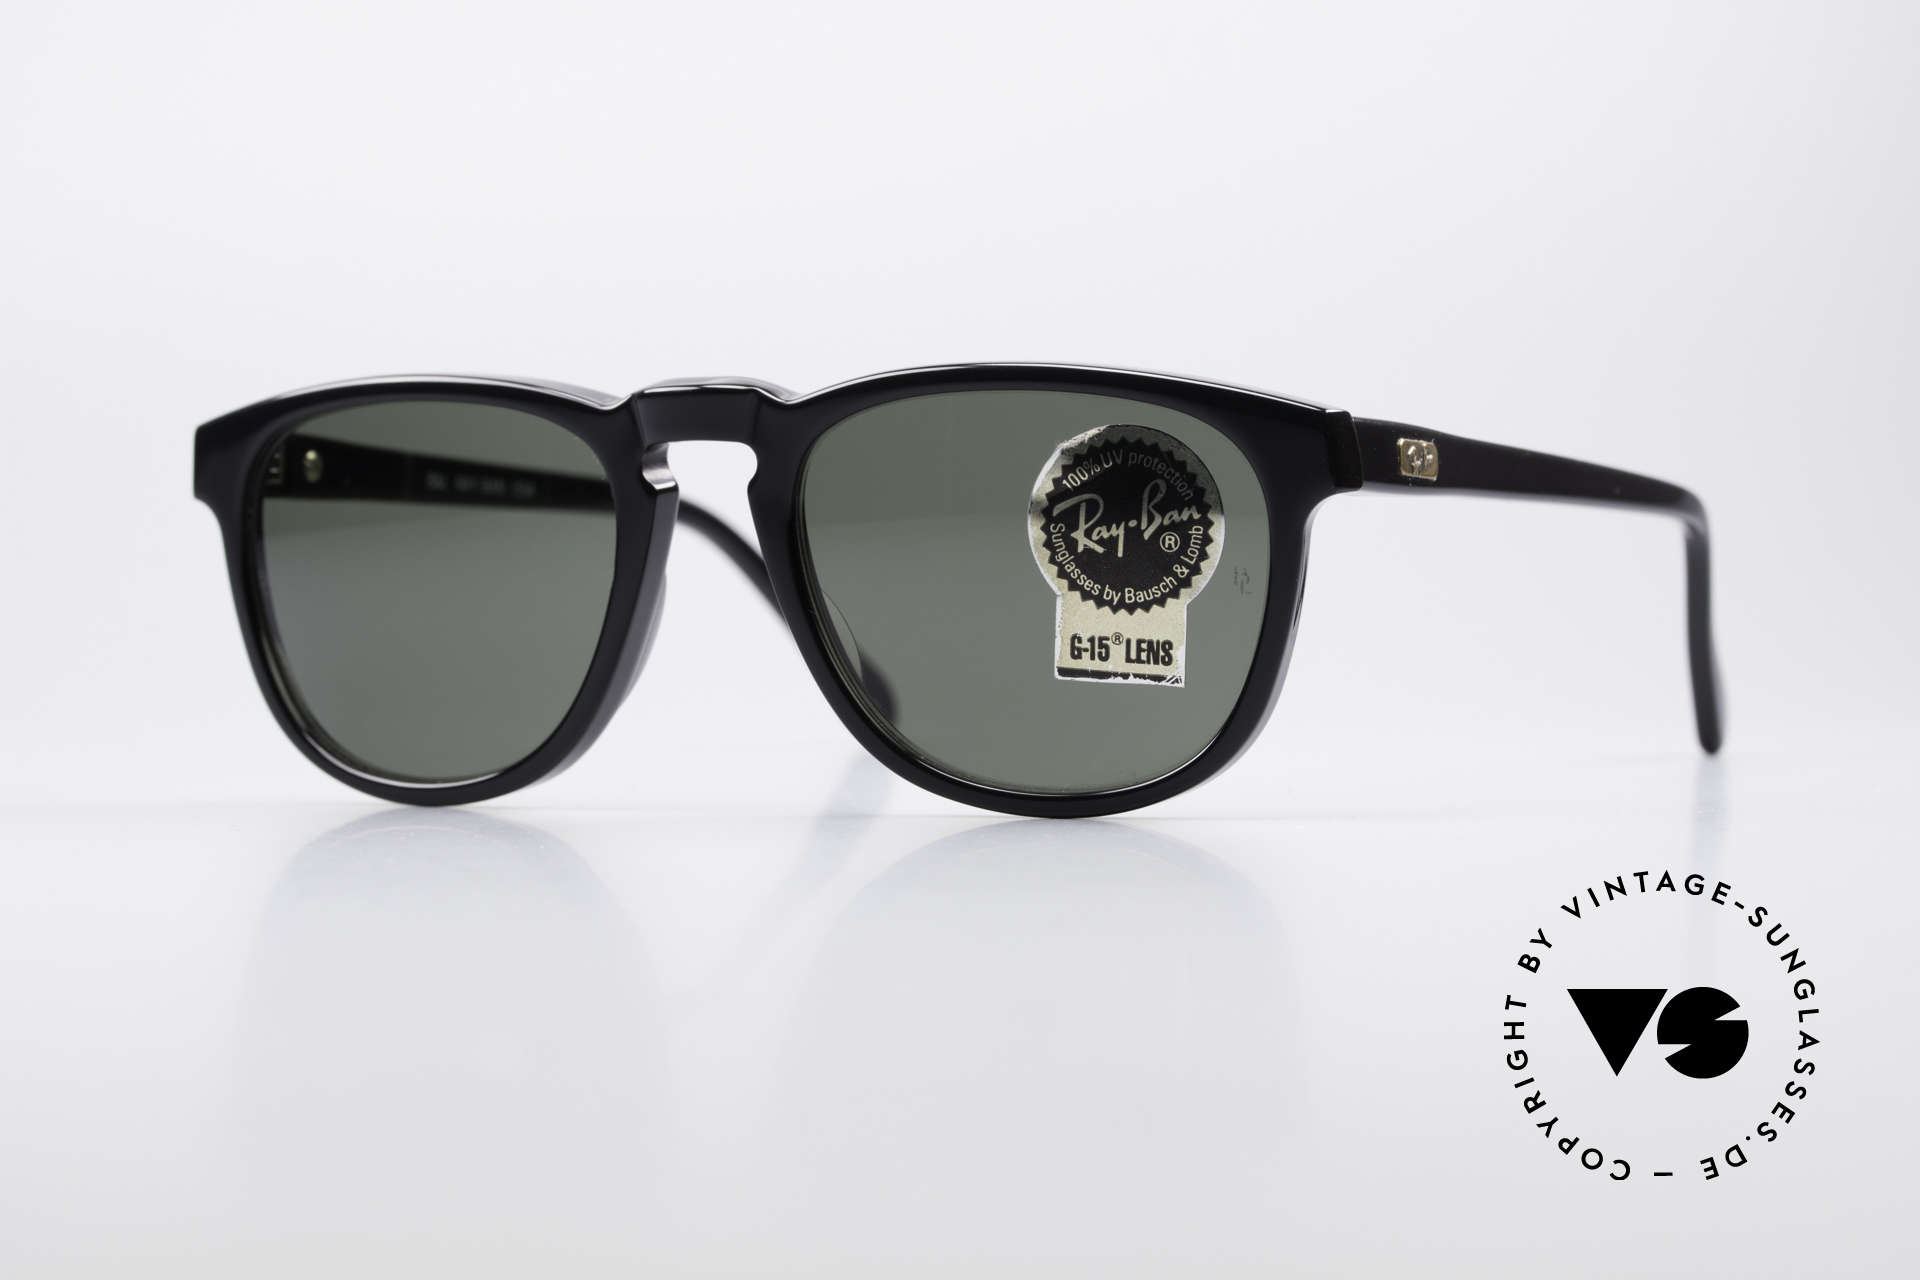 Ray Ban Gatsby Style 2 Old Ray Ban USA Sunglasses, classic vintage Ray Ban designer sunglasses, Made for Men and Women